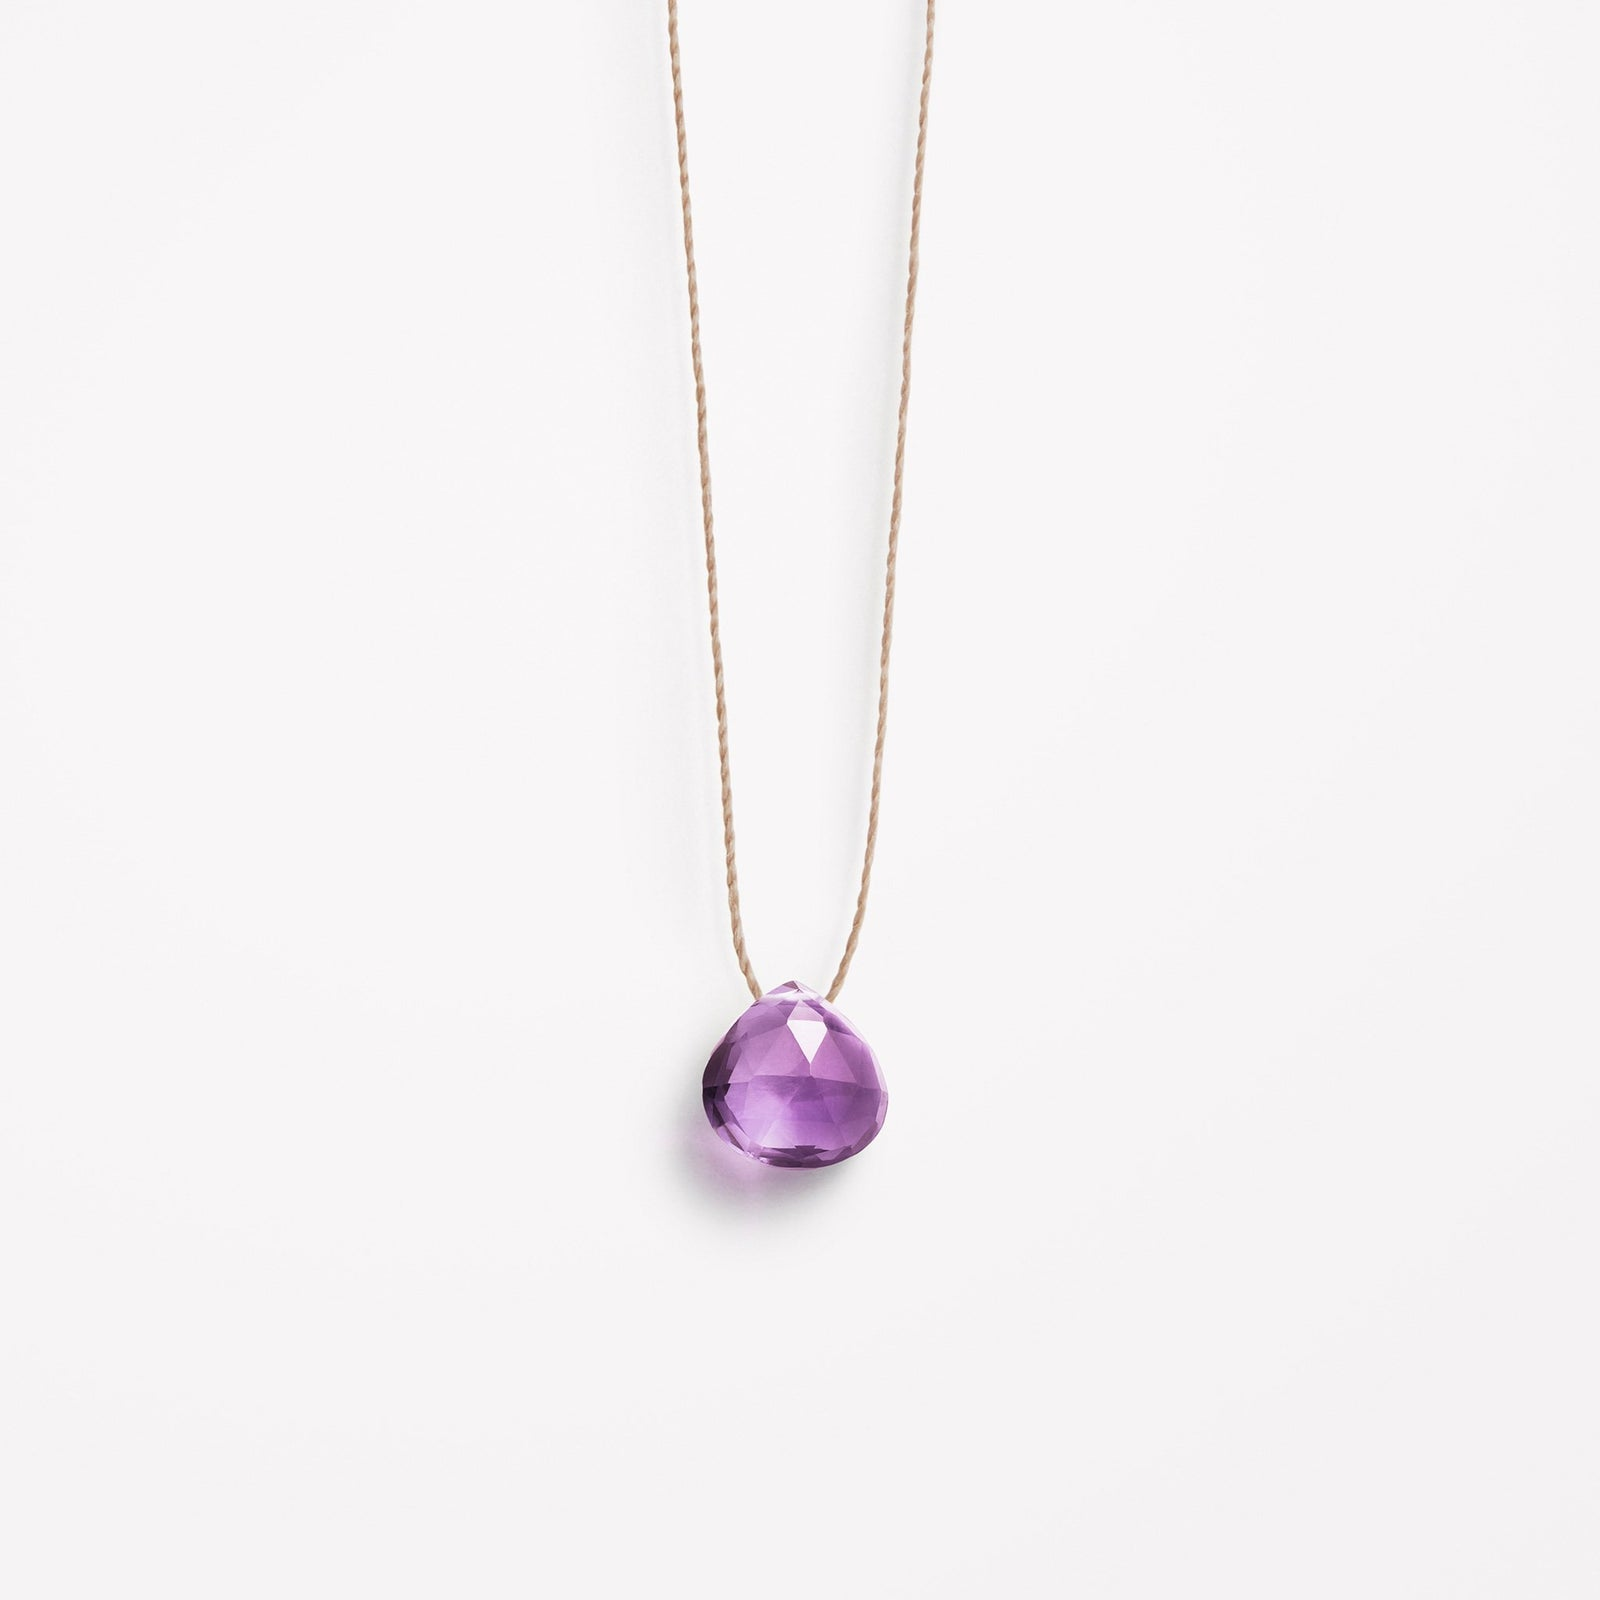 Wanderlust Life Ethically Handmade jewellery made in the UK. Minimalist gold and fine cord jewellery. purple amethyst fine cord necklace